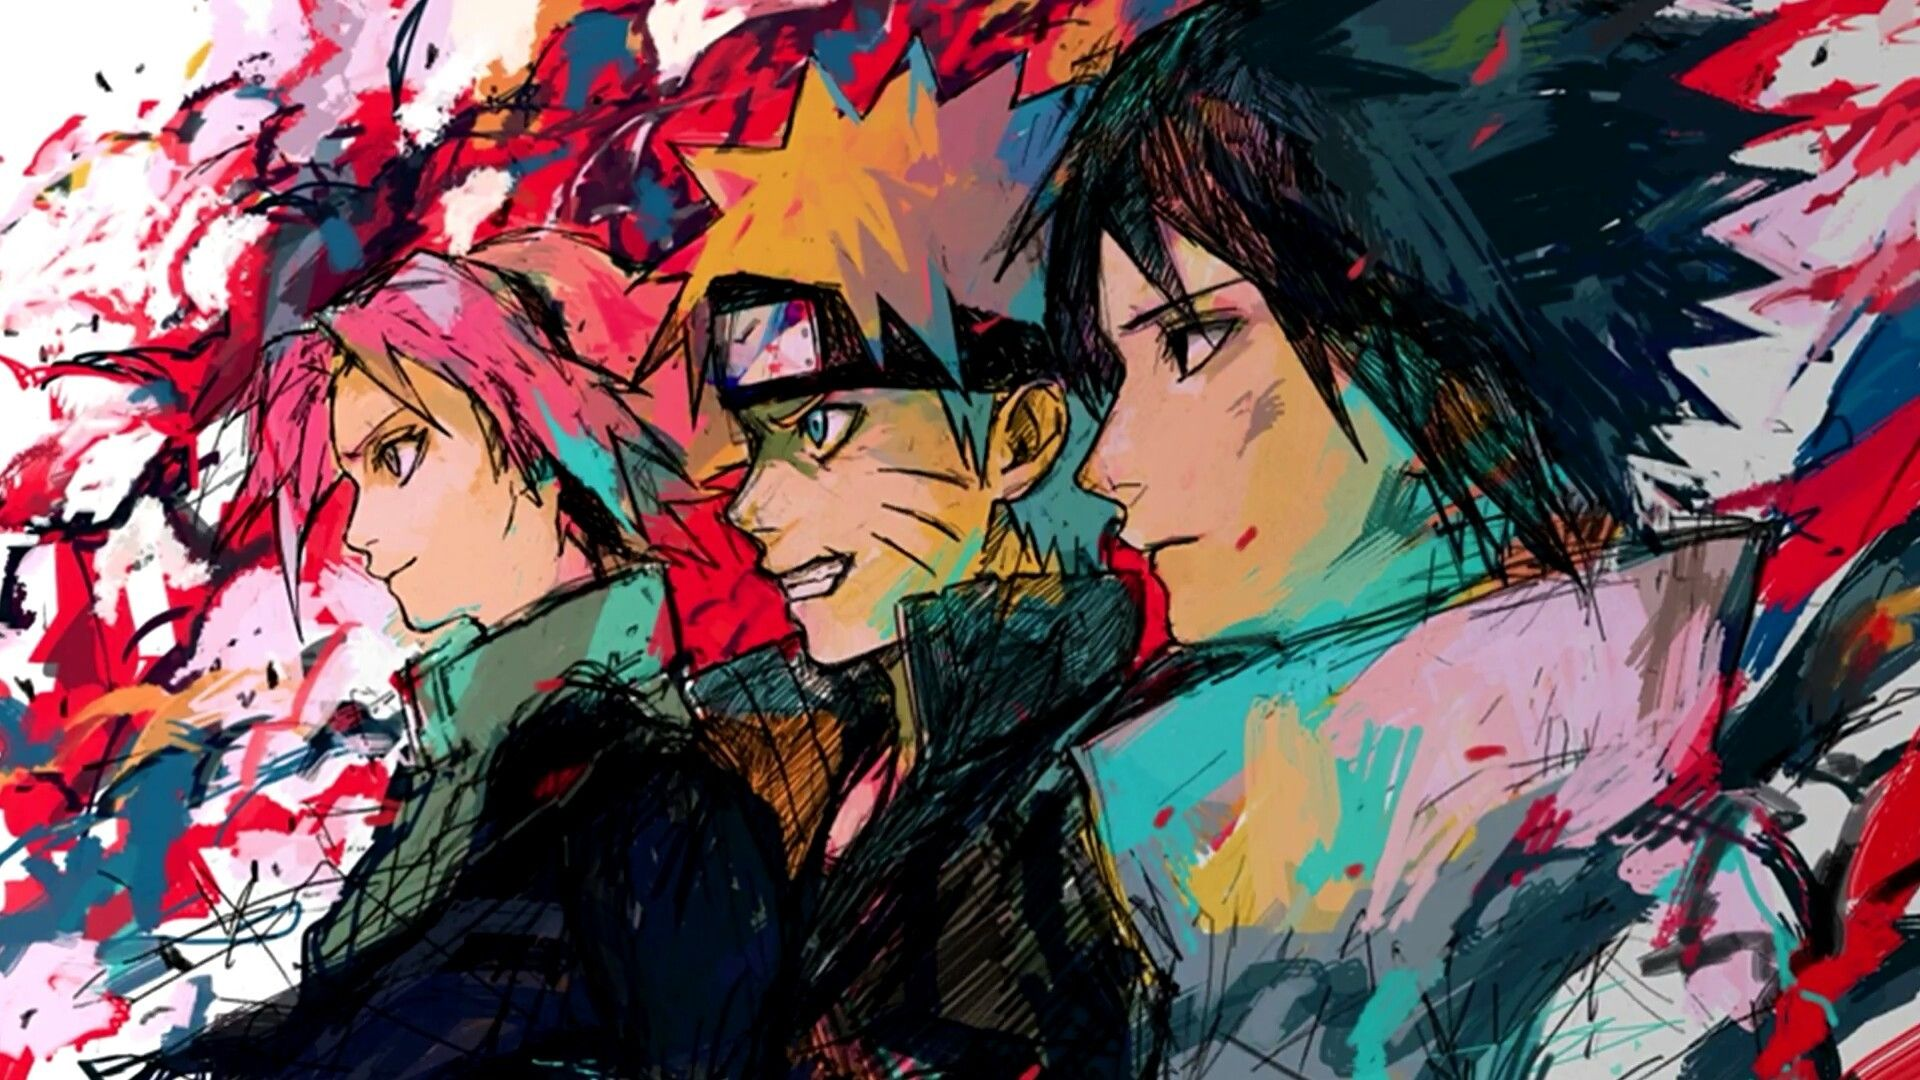 Aesthetic Naruto Wallpapers Top Free Aesthetic Naruto Backgrounds Wallpaperaccess